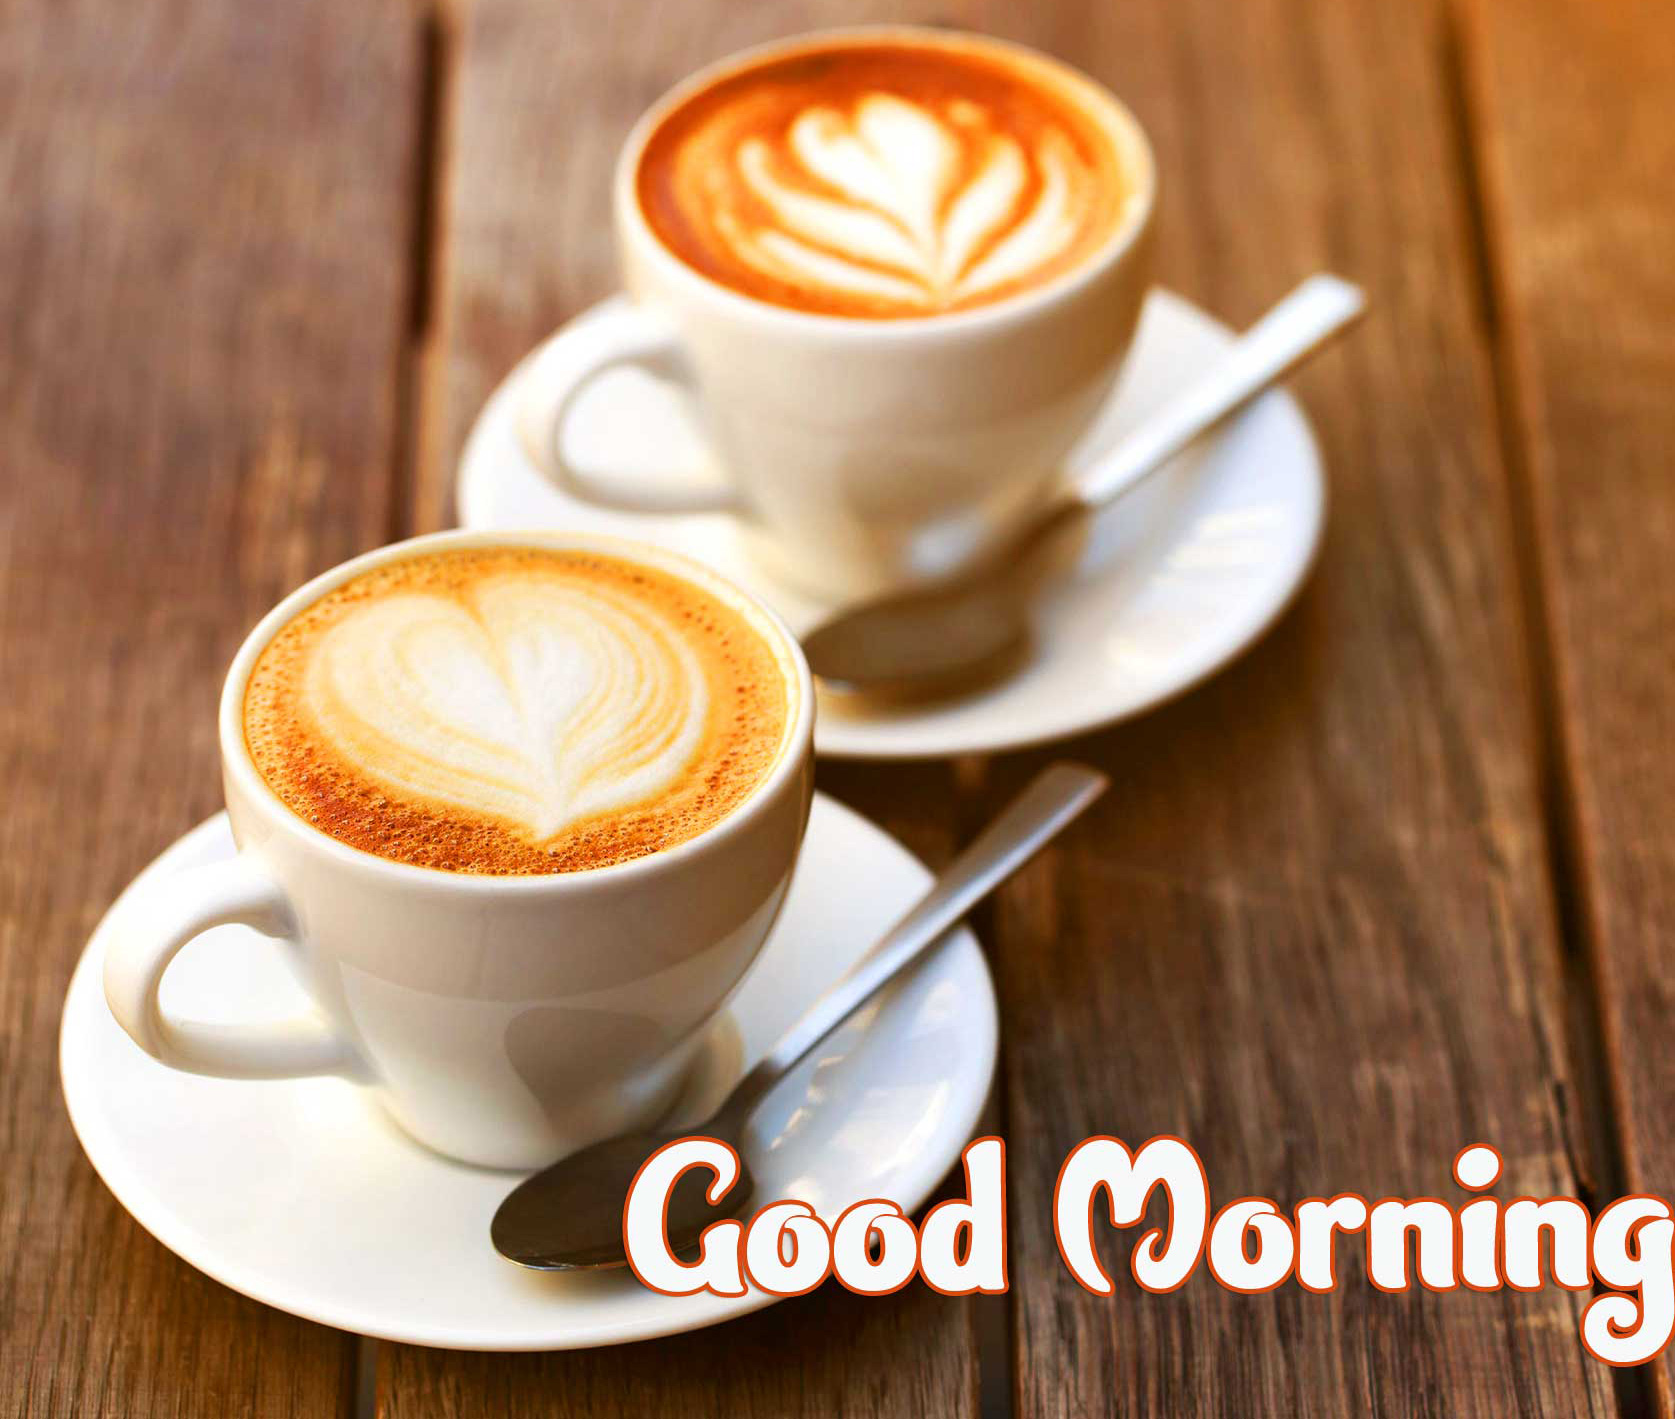 Beautiful 2021 Good Morning Images Pics Wallpaper Free Download